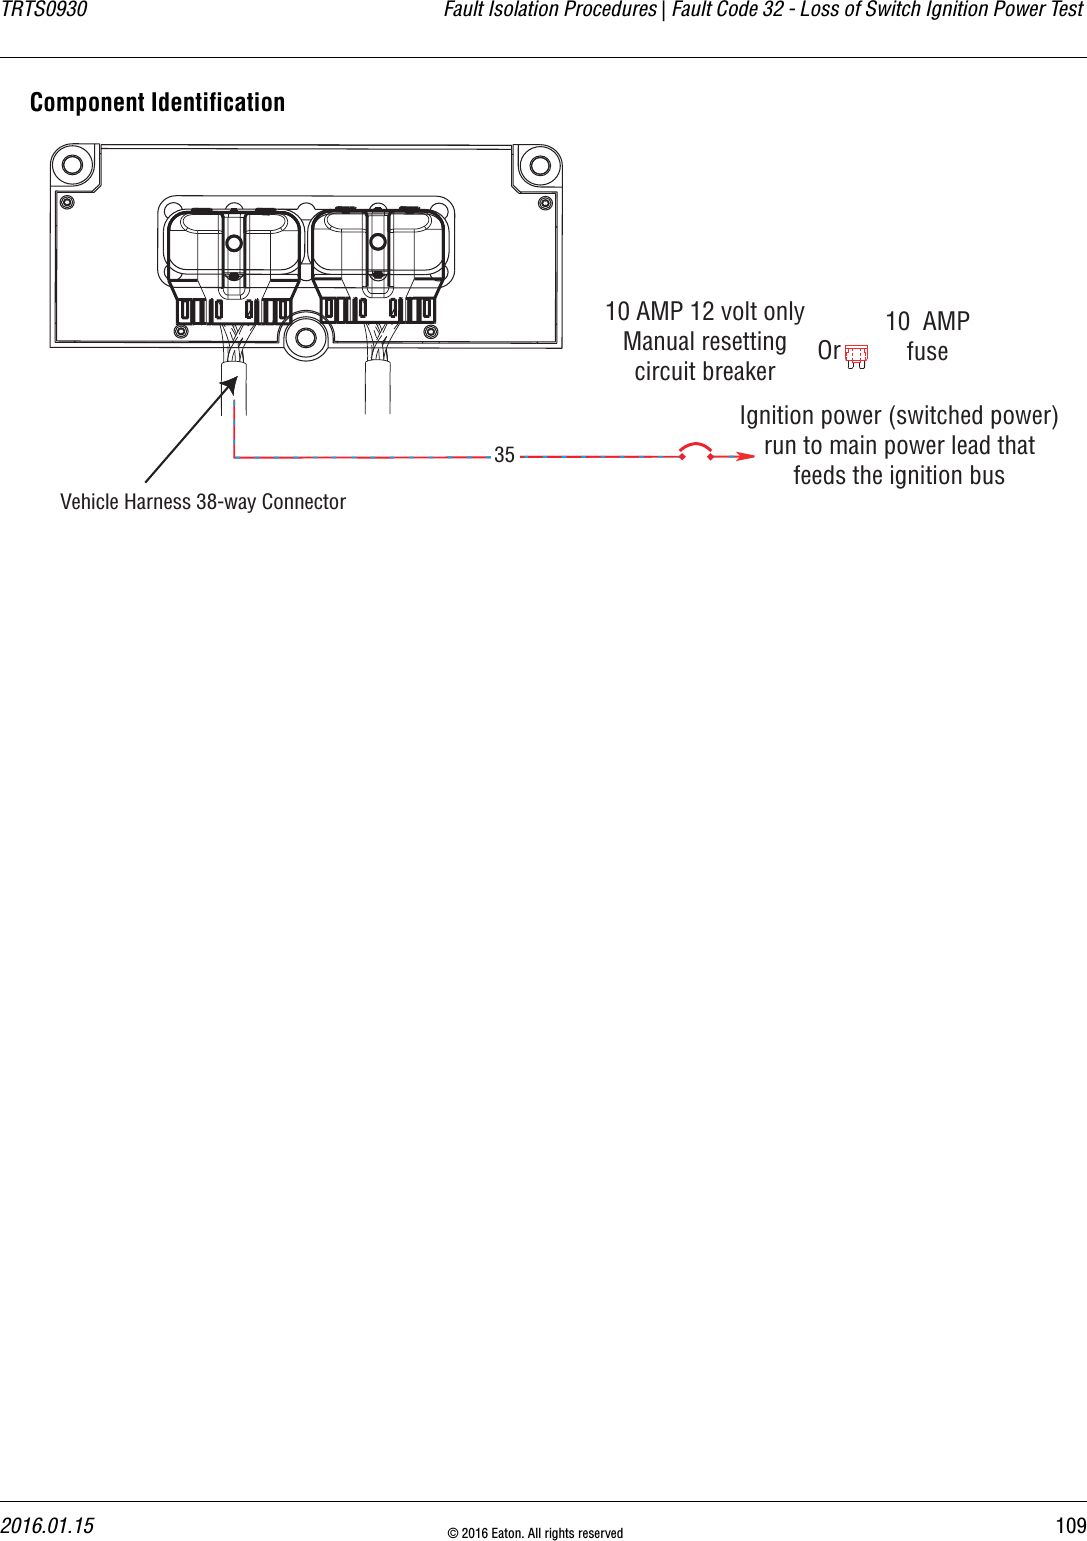 Eaton Auto Shift Wiring Diagram - Nice Place to Get Wiring